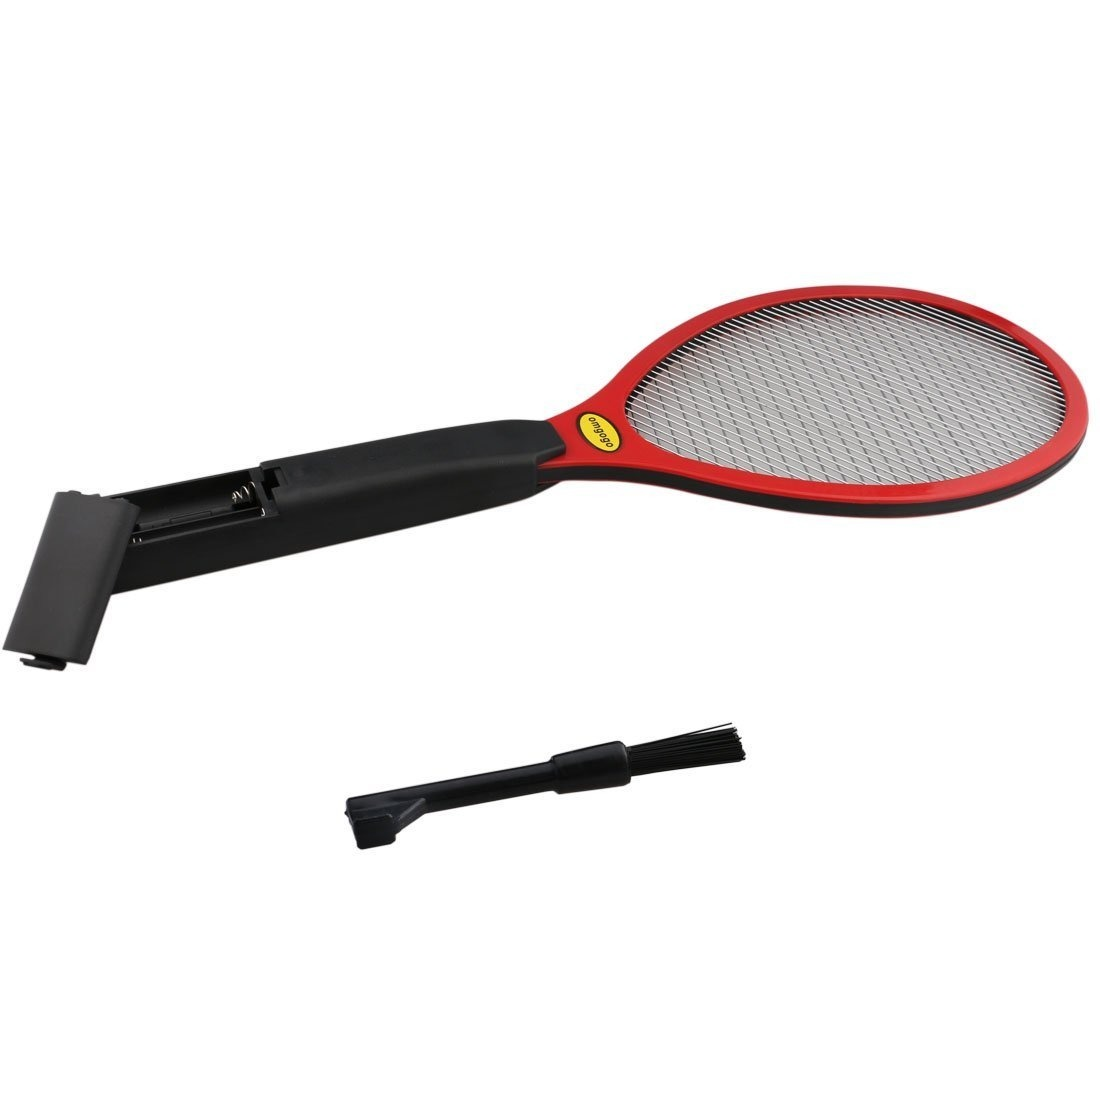 Circuito Zapper : Insecticida electric bug zapper fly swatter zap mosquito red